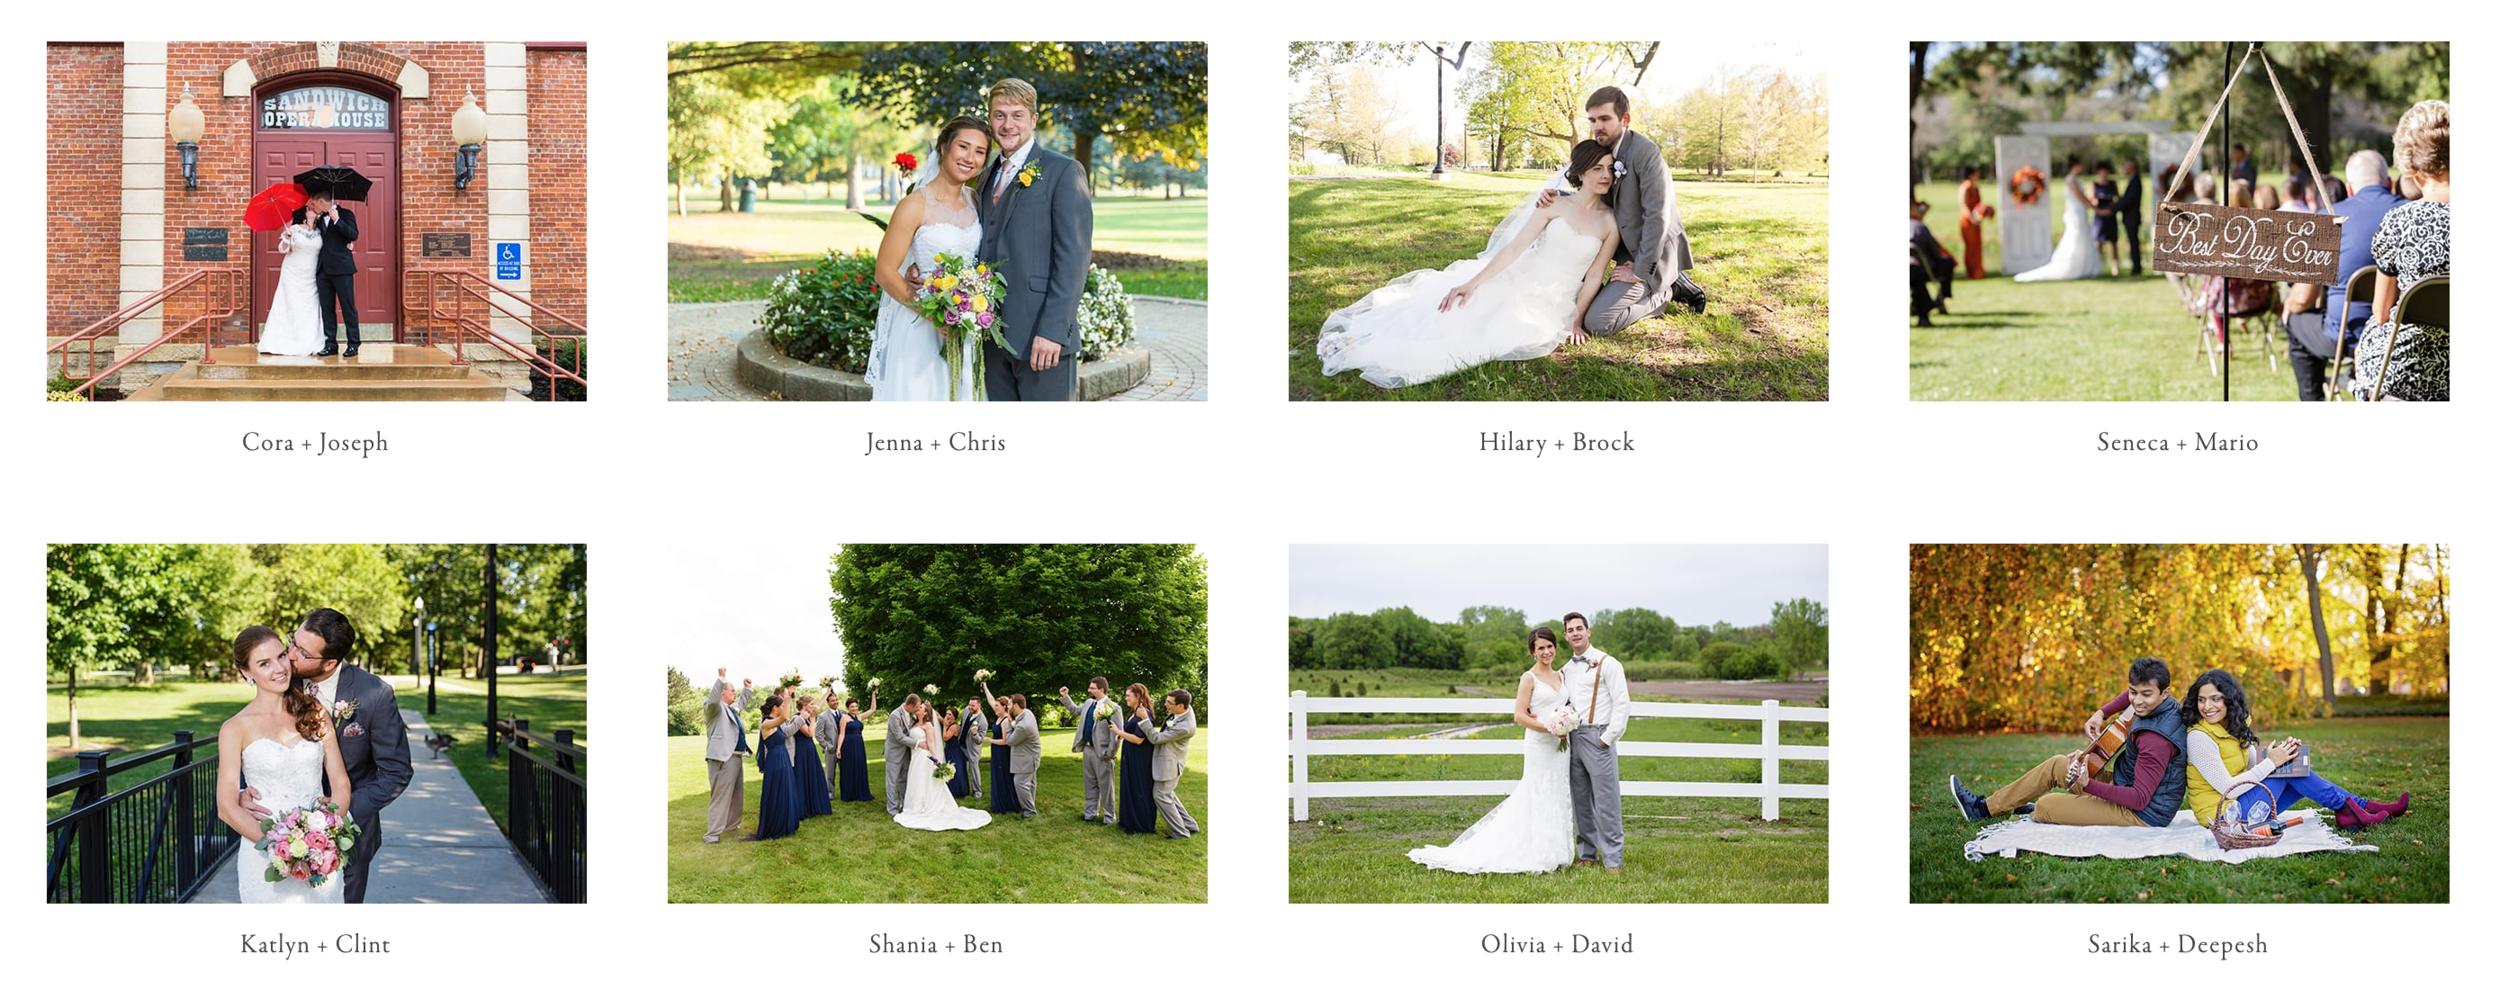 The Gallery - Beautiful online gallery provides the ultimate experience for viewing and sharing your wedding day photographs to family and friends. This is the IMAX experience powered by Pic-Time.